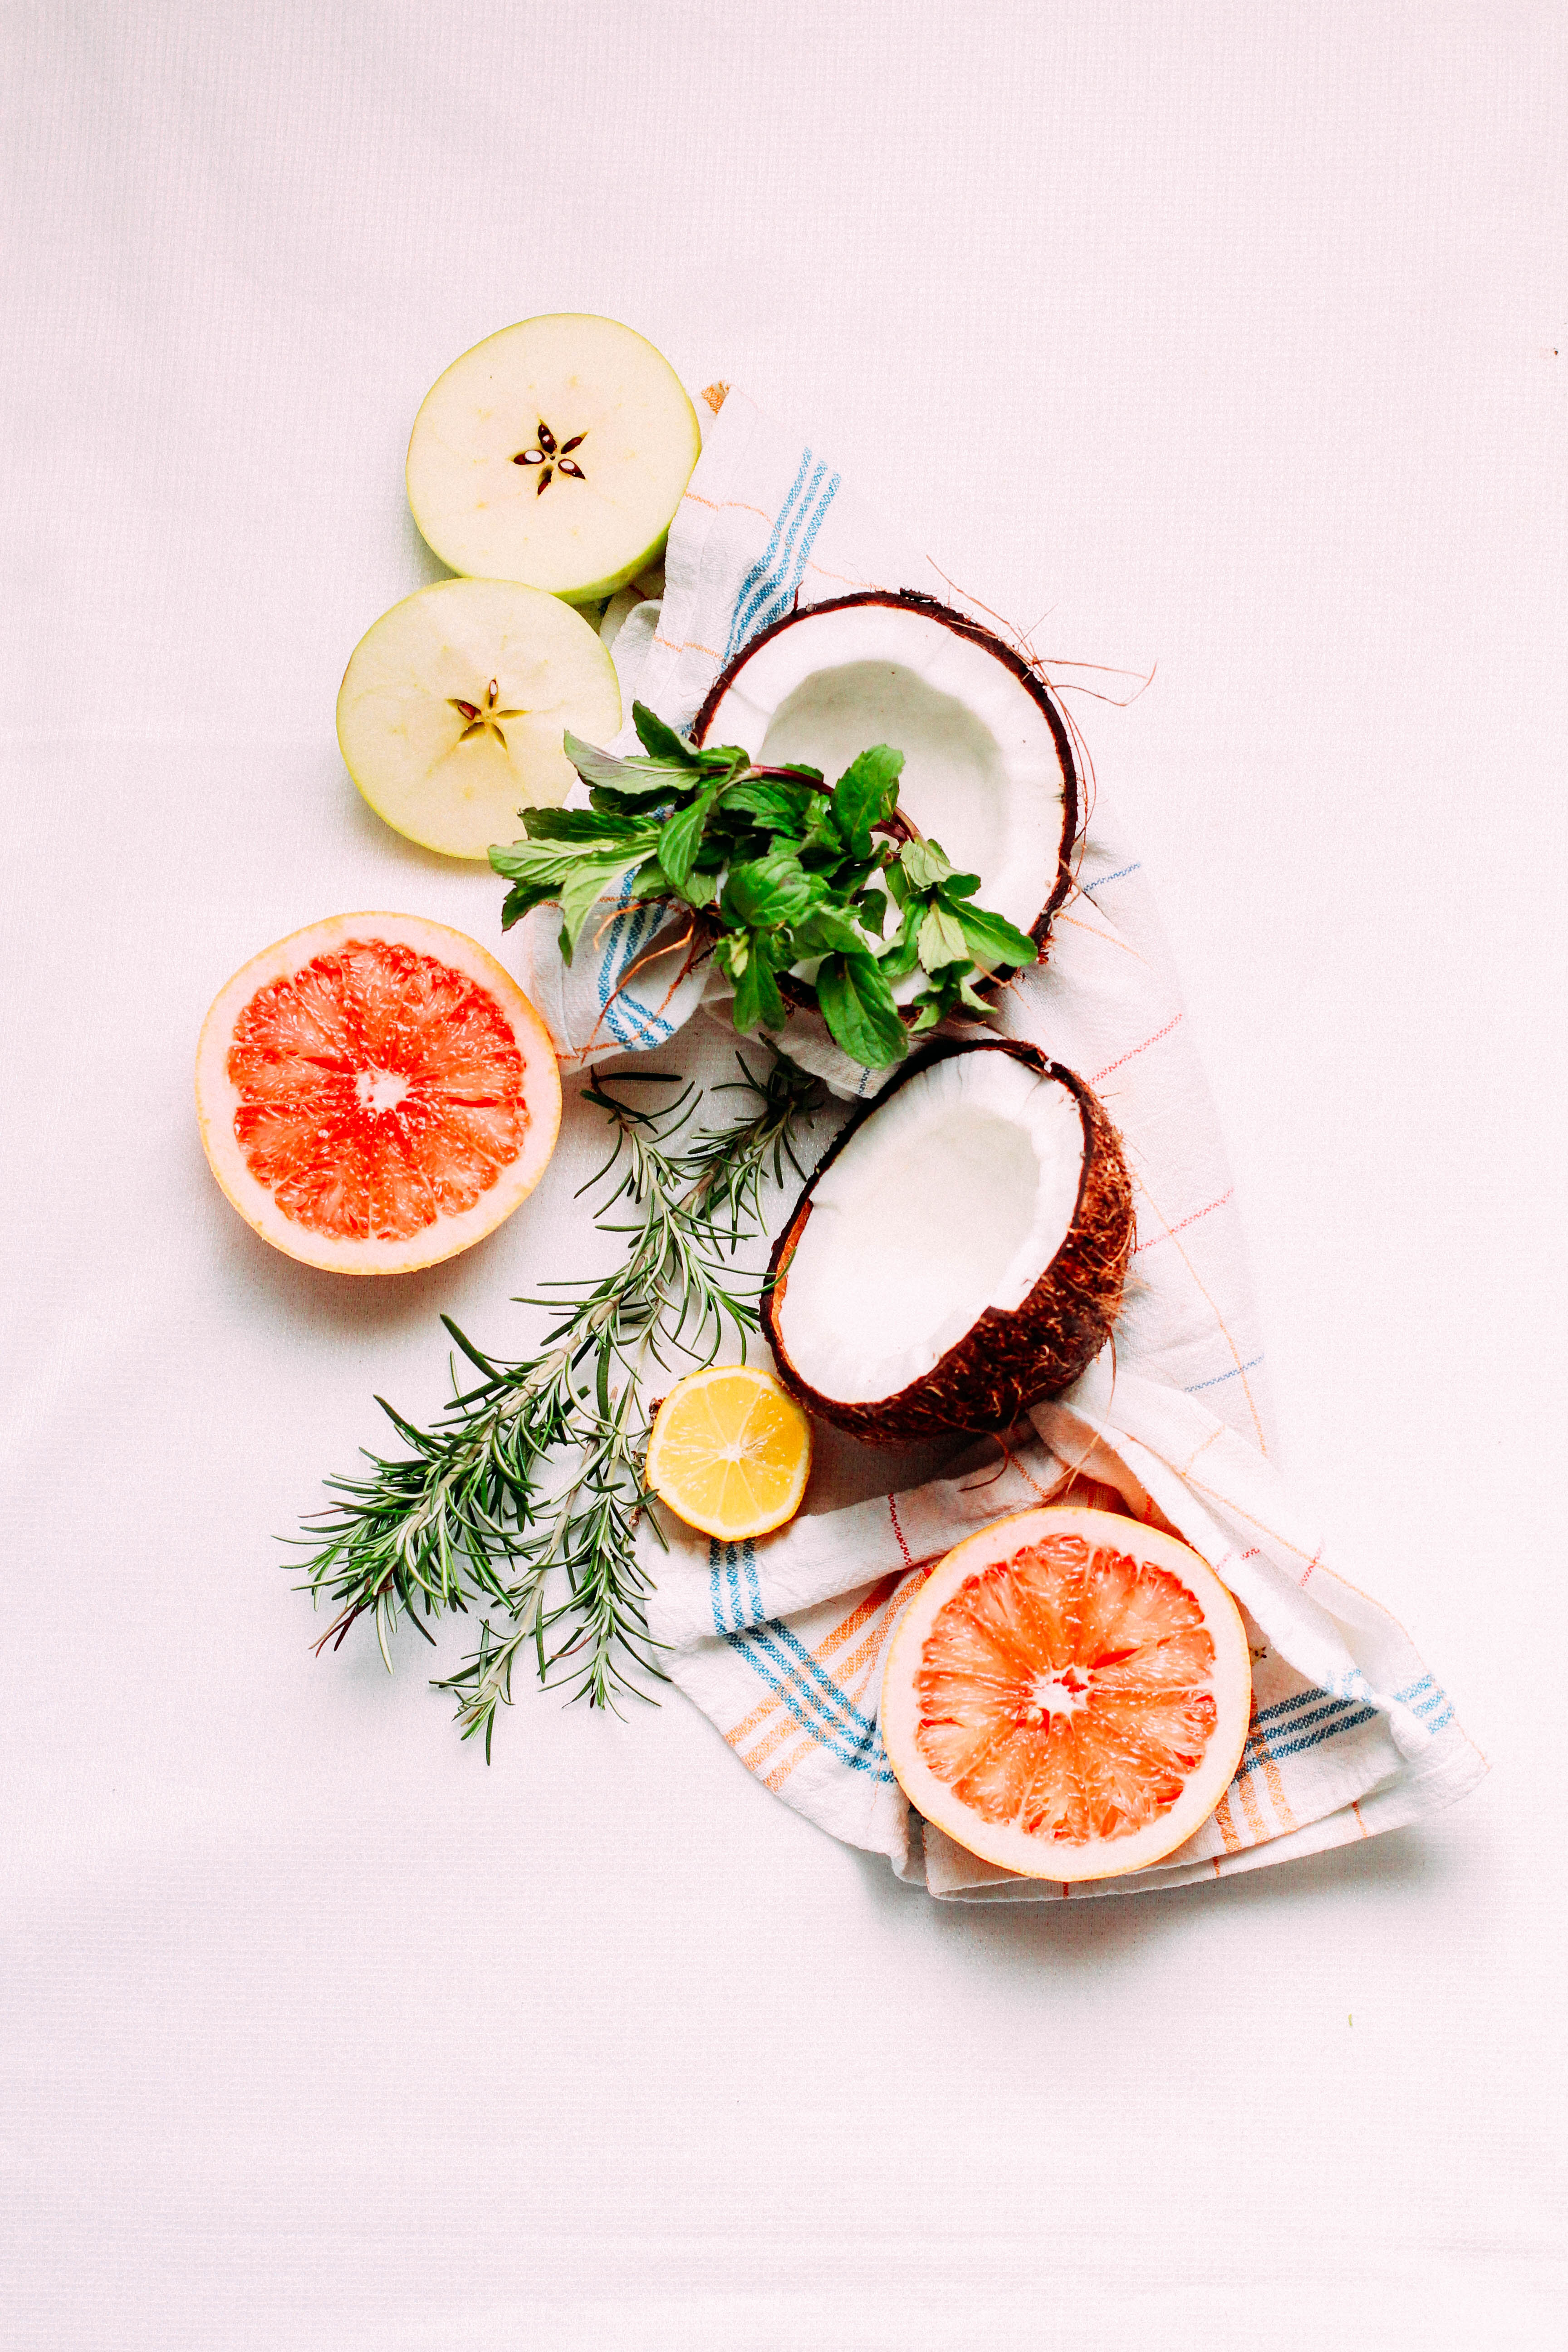 64594 download wallpaper Fruits, Food, Apples, Herbs, Herbage, Coconut, Grapefruit screensavers and pictures for free